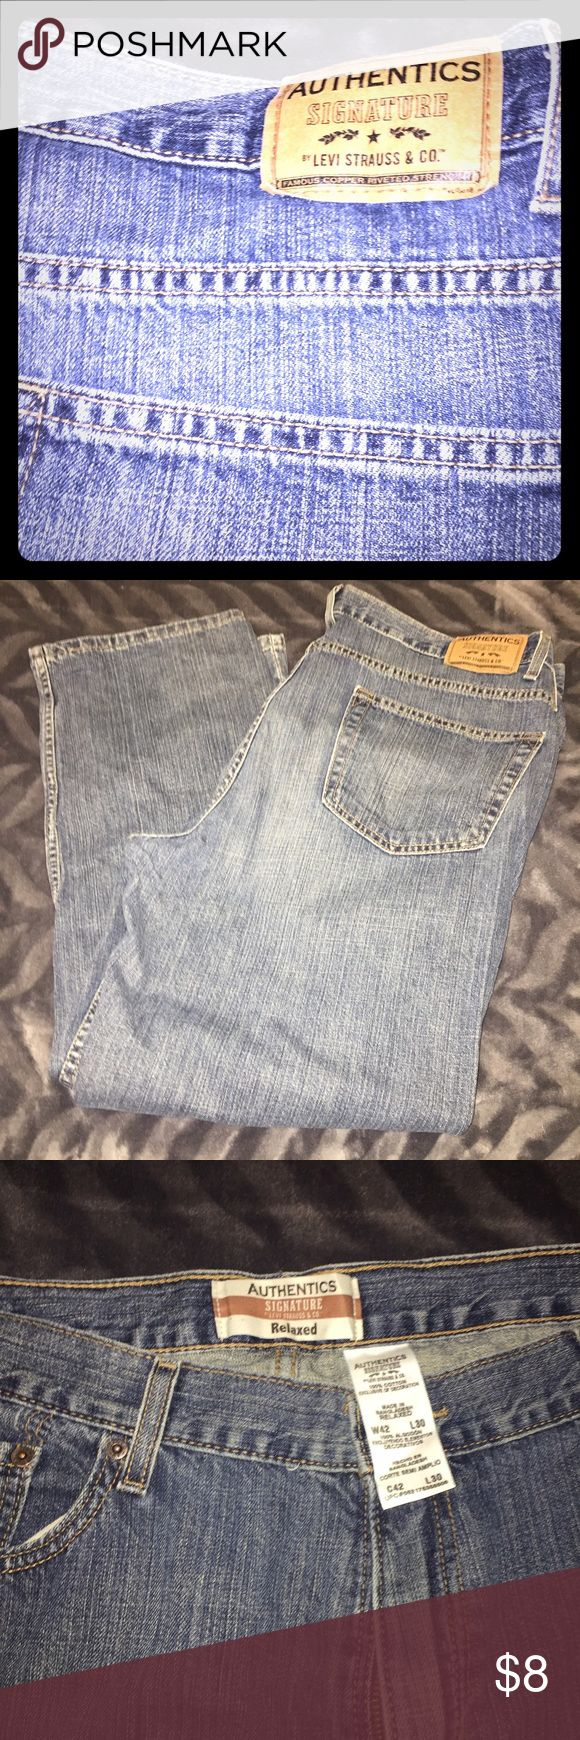 Levi Strauss Men's Relaxed Fit Jeans Relaxed Fit Men's Jeans by Levi Strauss - 42x30. Gently worn. Levi's Jeans Relaxed